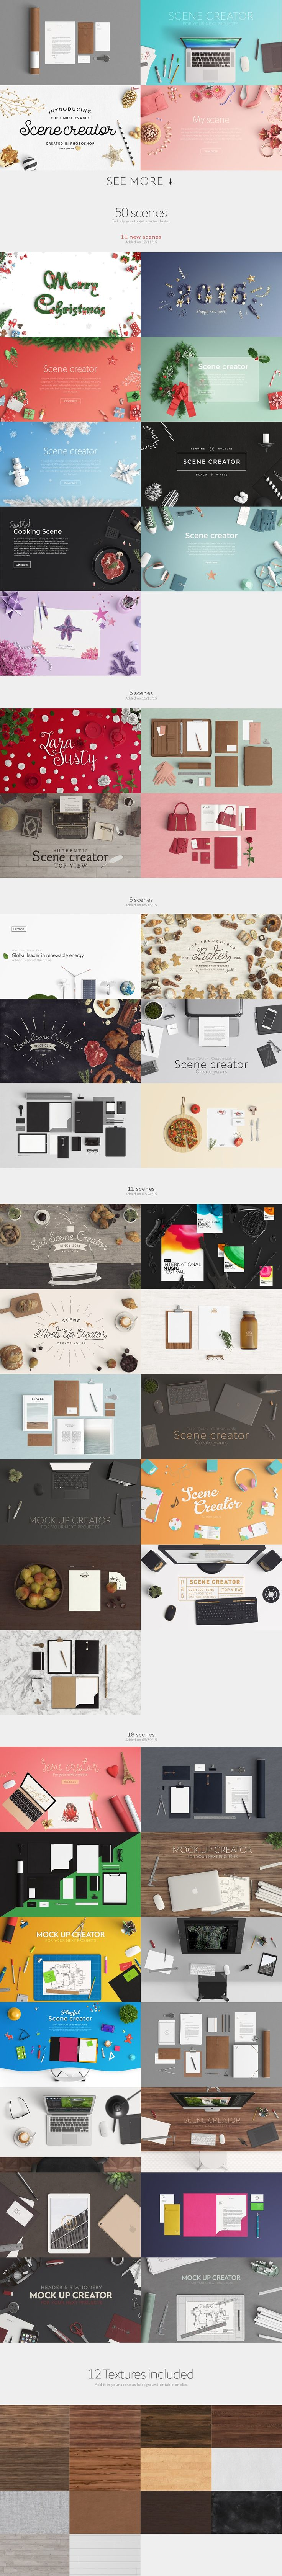 Ultimate Scene Creator Bundle with 2 different views + Extended license. Create unique scenes with 2550 item available in 8150 positions. From flat lay to stationery mock up. From desk scene to app showcase. Be a creator. Let your imagination be and create with no limit just in minutes. If you need to get started even faster, select a scene among 80.